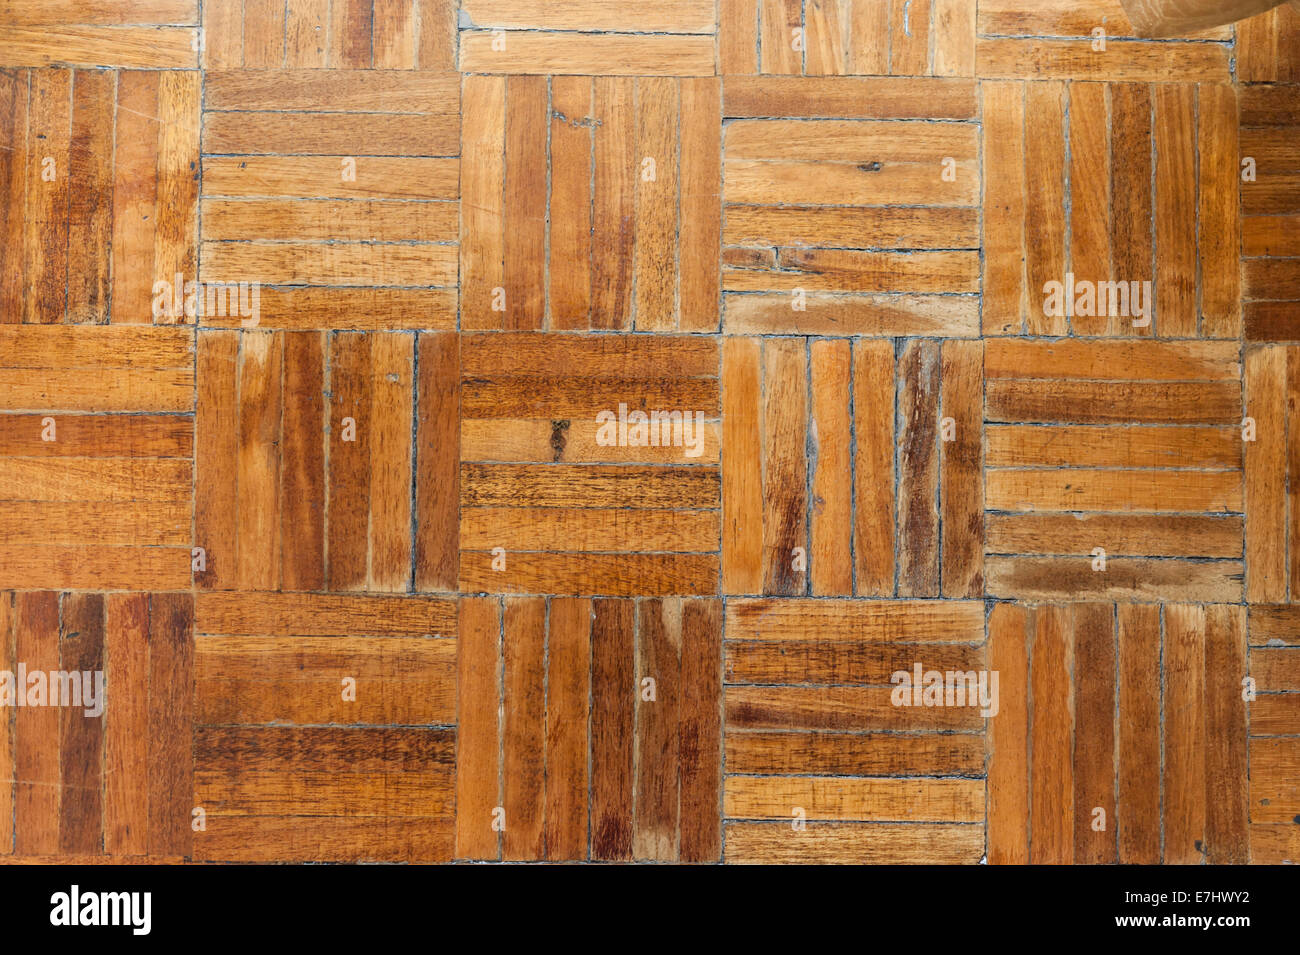 Rustic Wood Flooring Texture With A Parquet Pattern